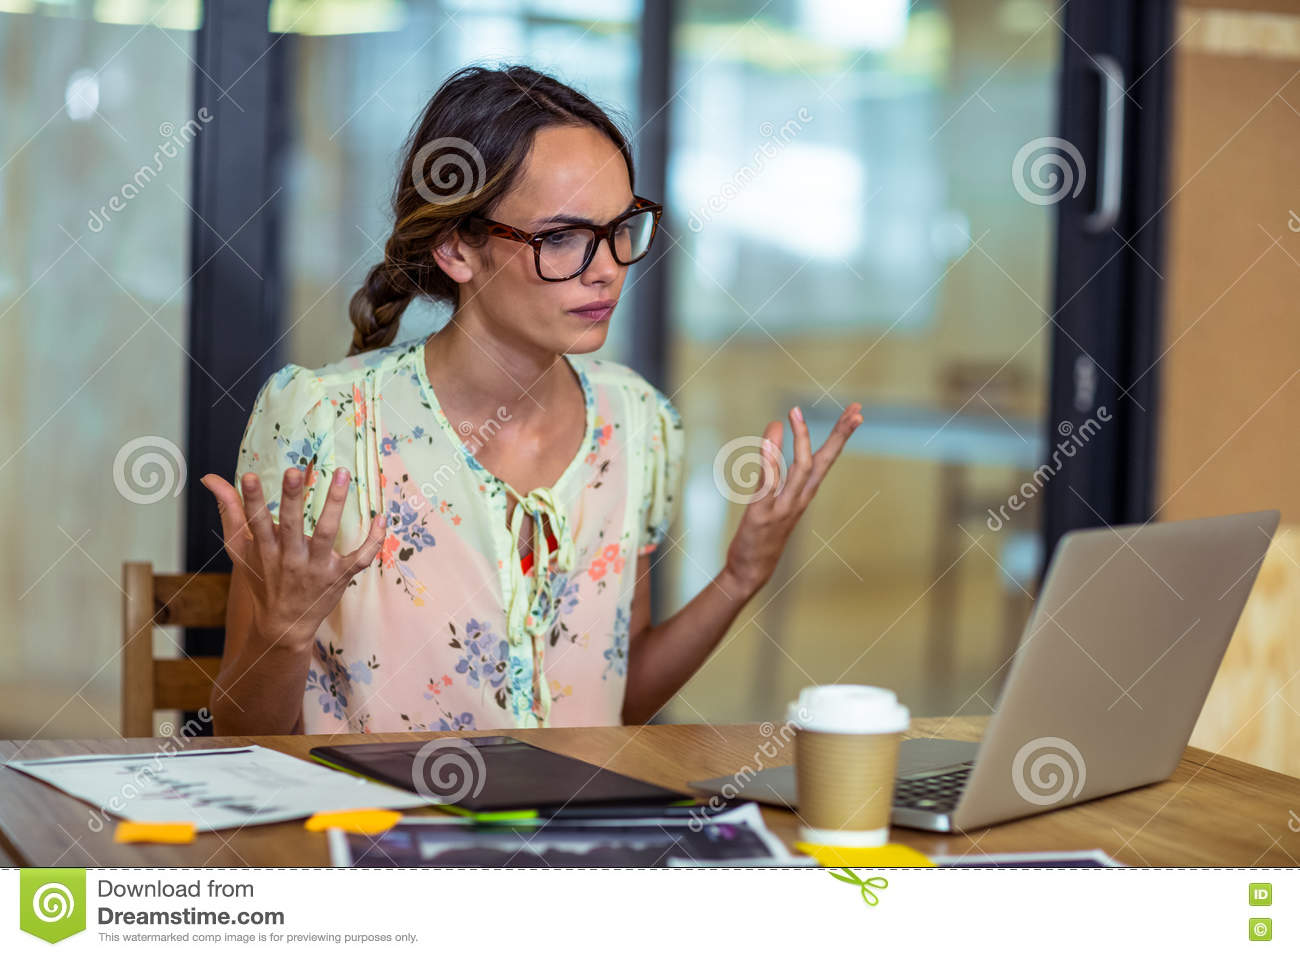 Frustrated female graphic designer looking at laptop